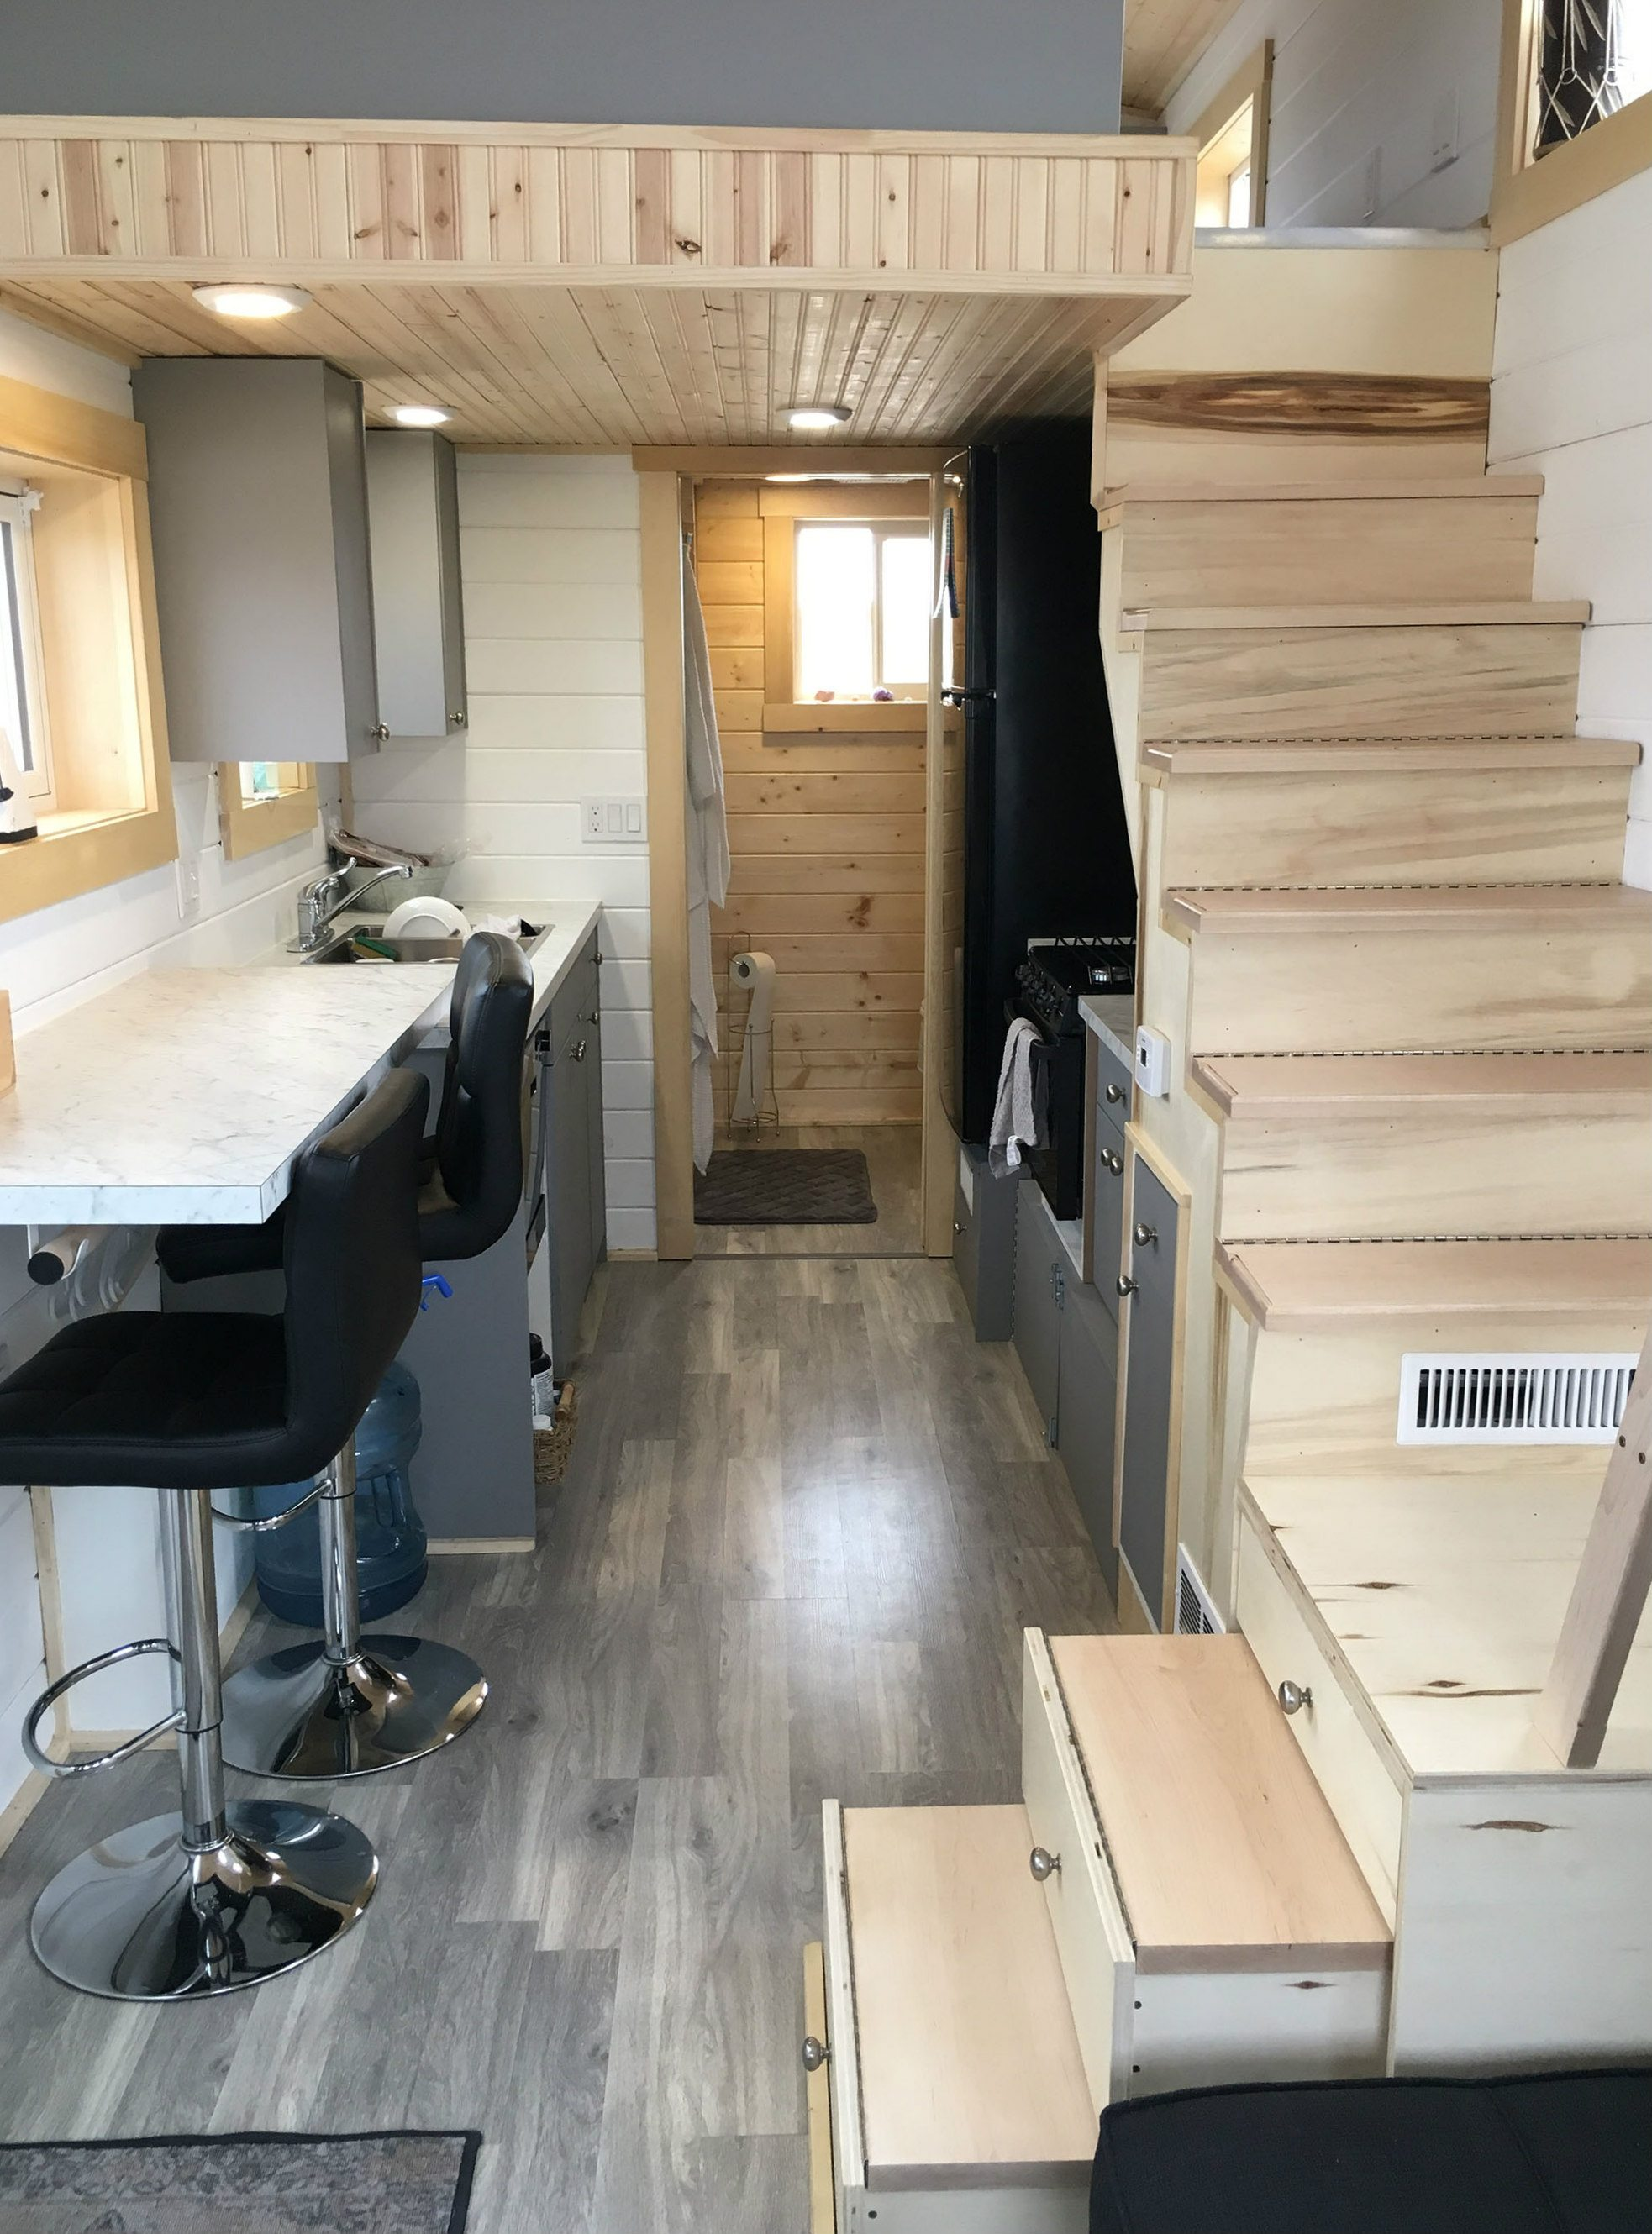 Discover If Tiny Home Living Could Work For You At The